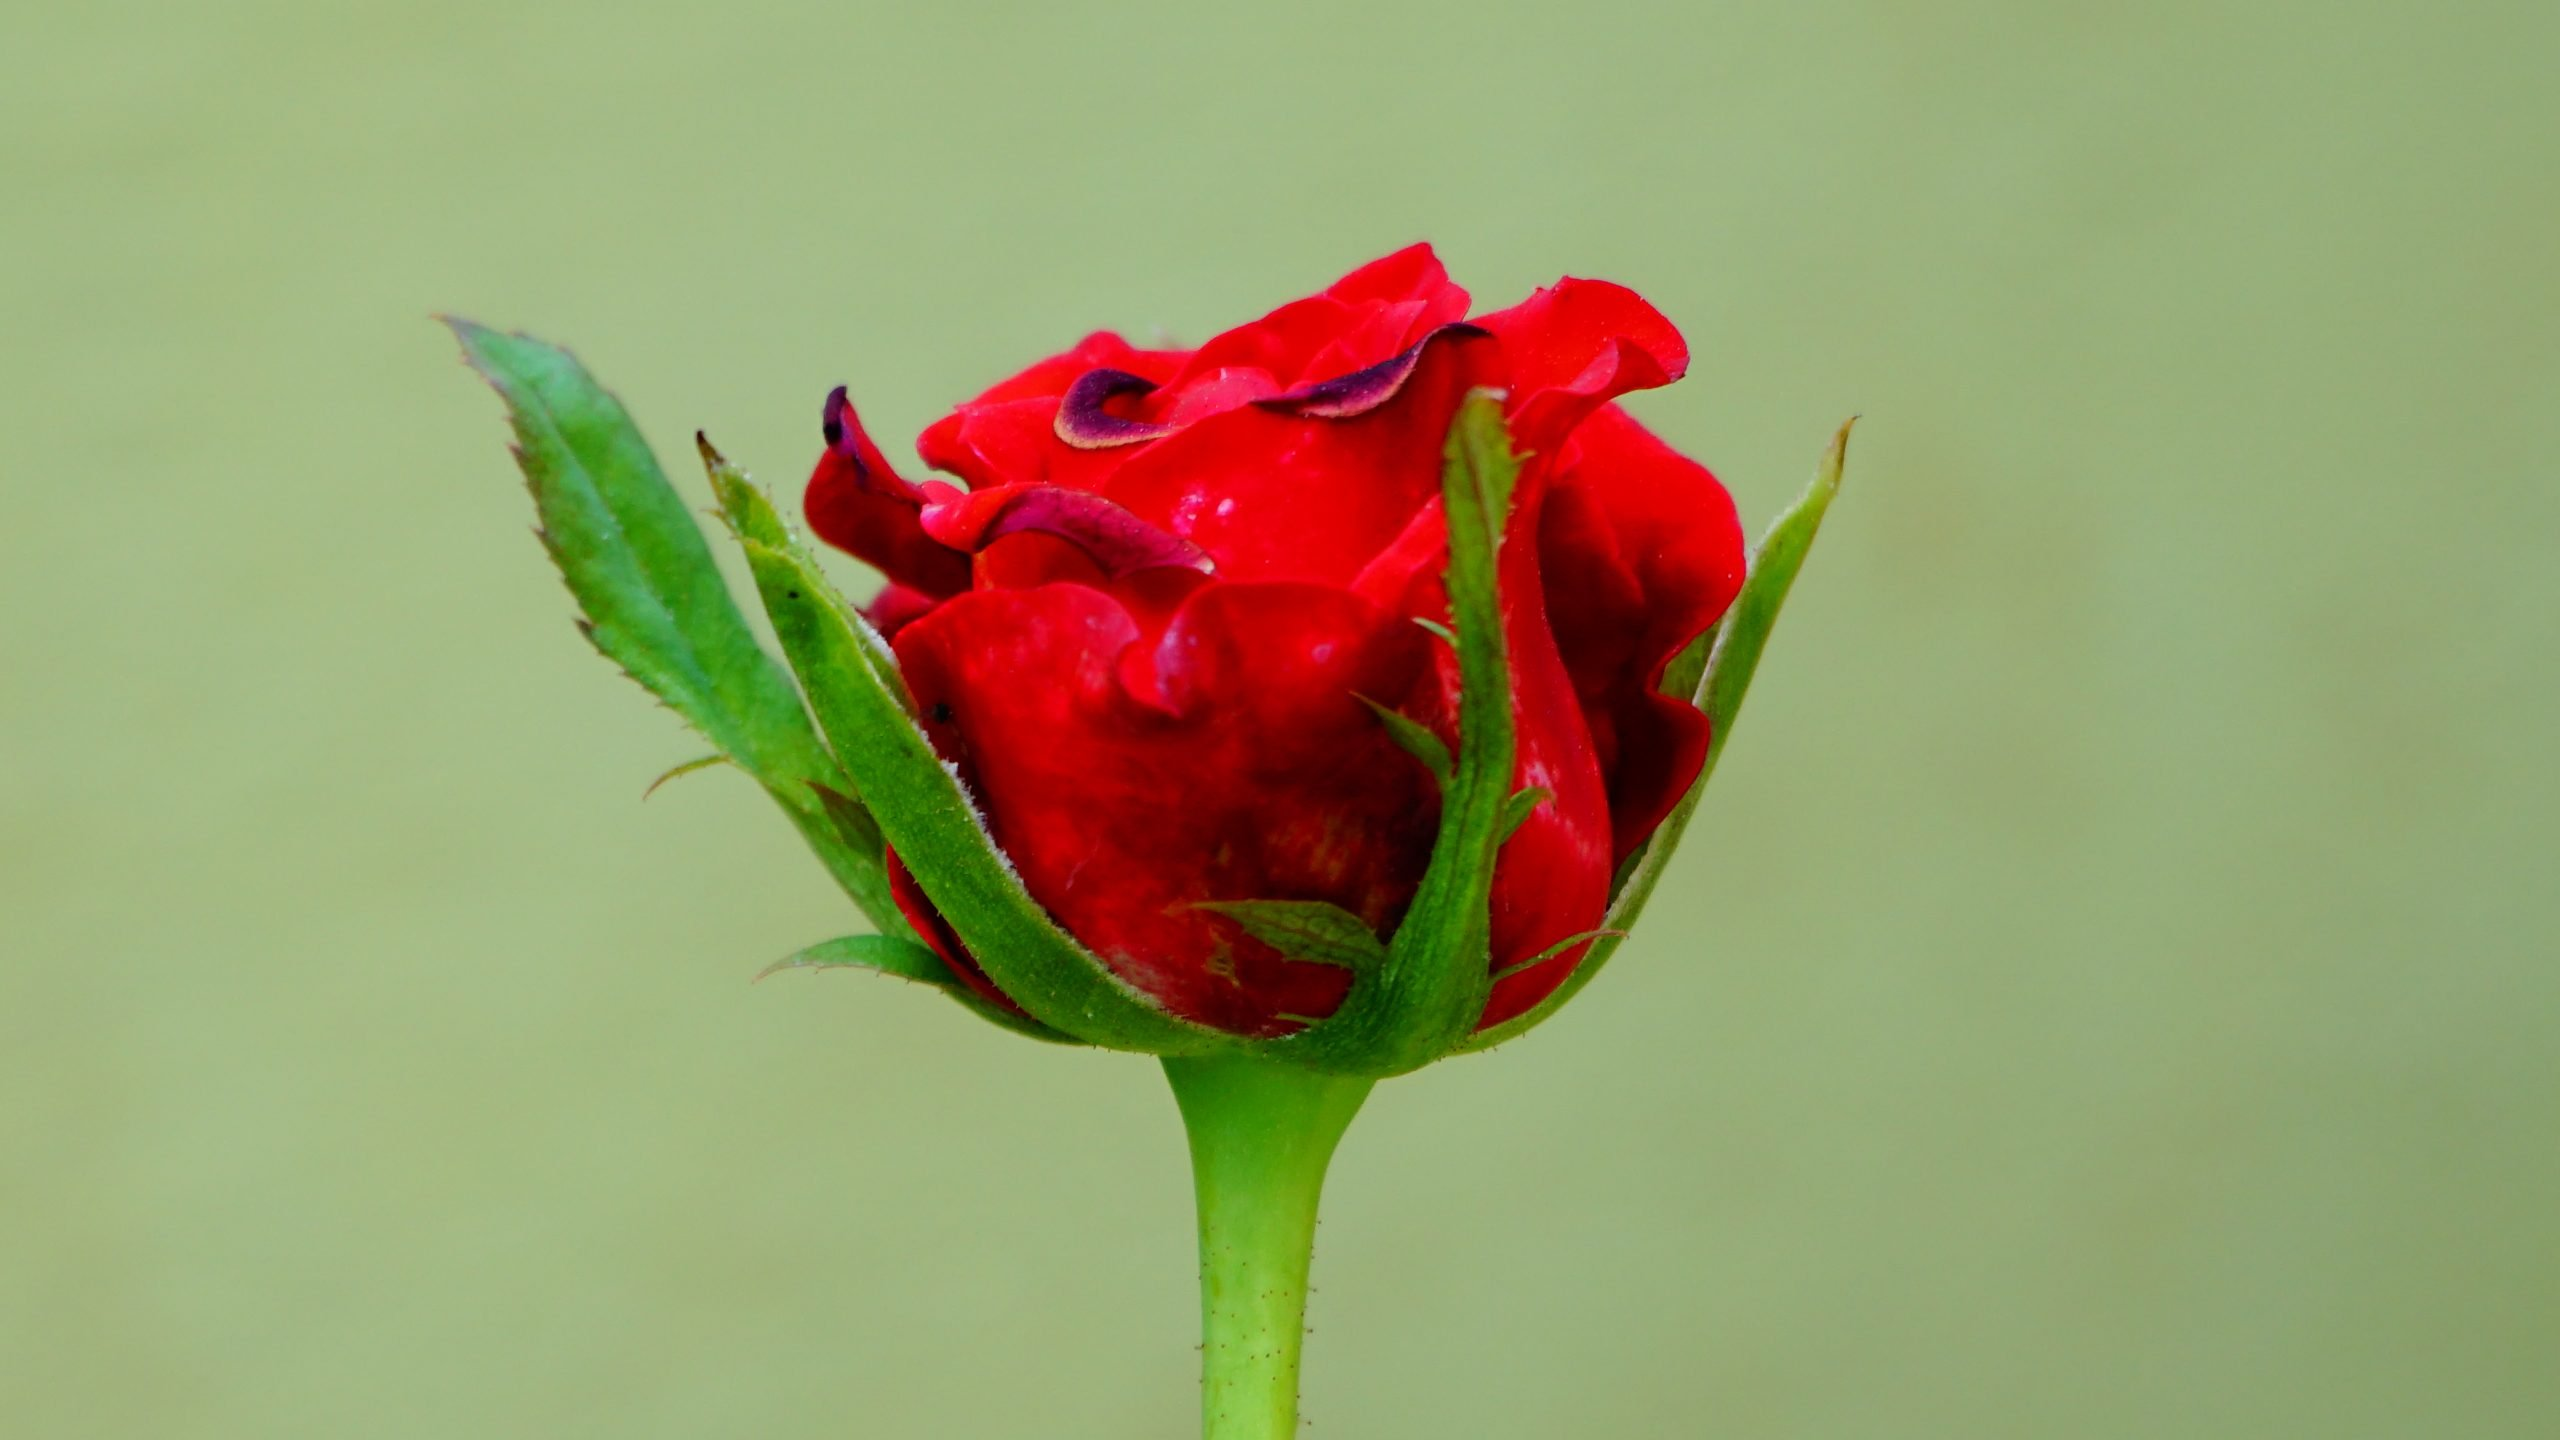 Red rose on green background